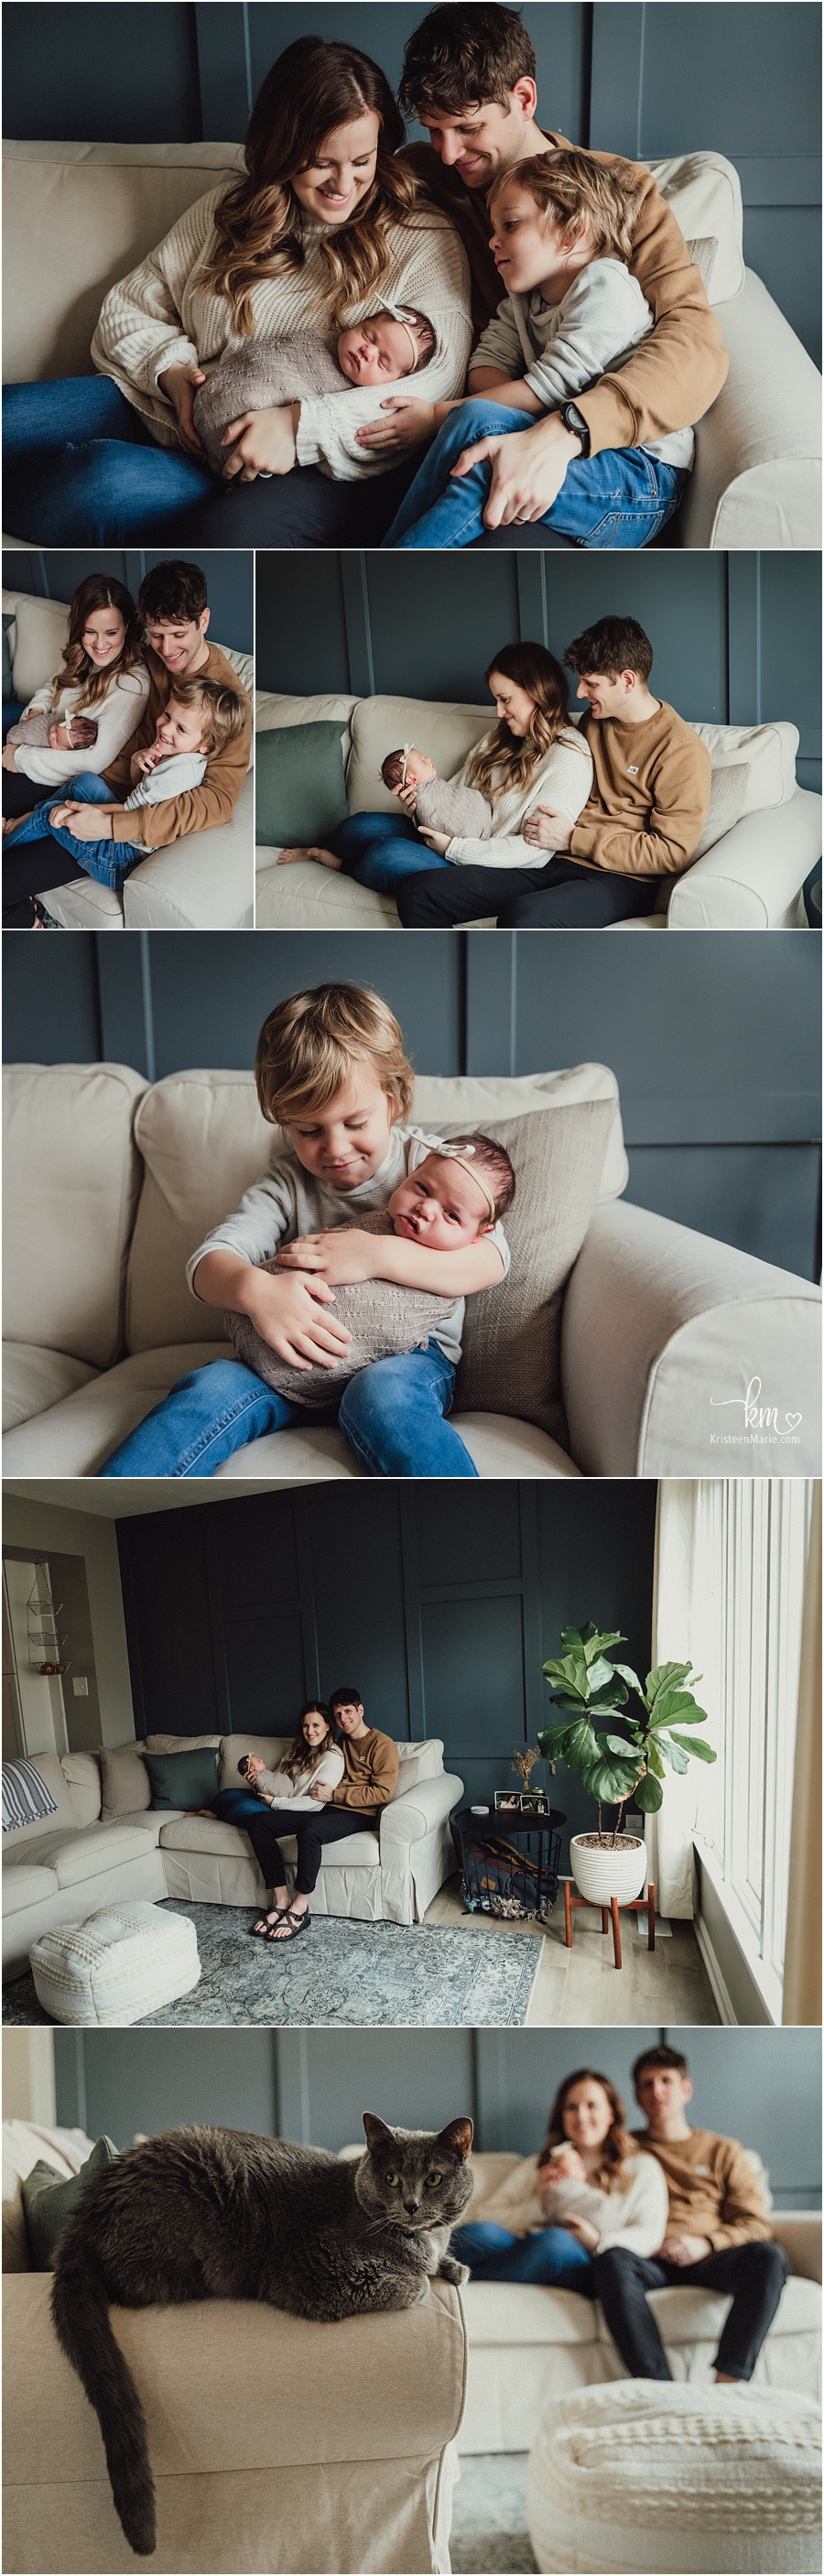 family with newborn baby - traditionally decorated home with plants